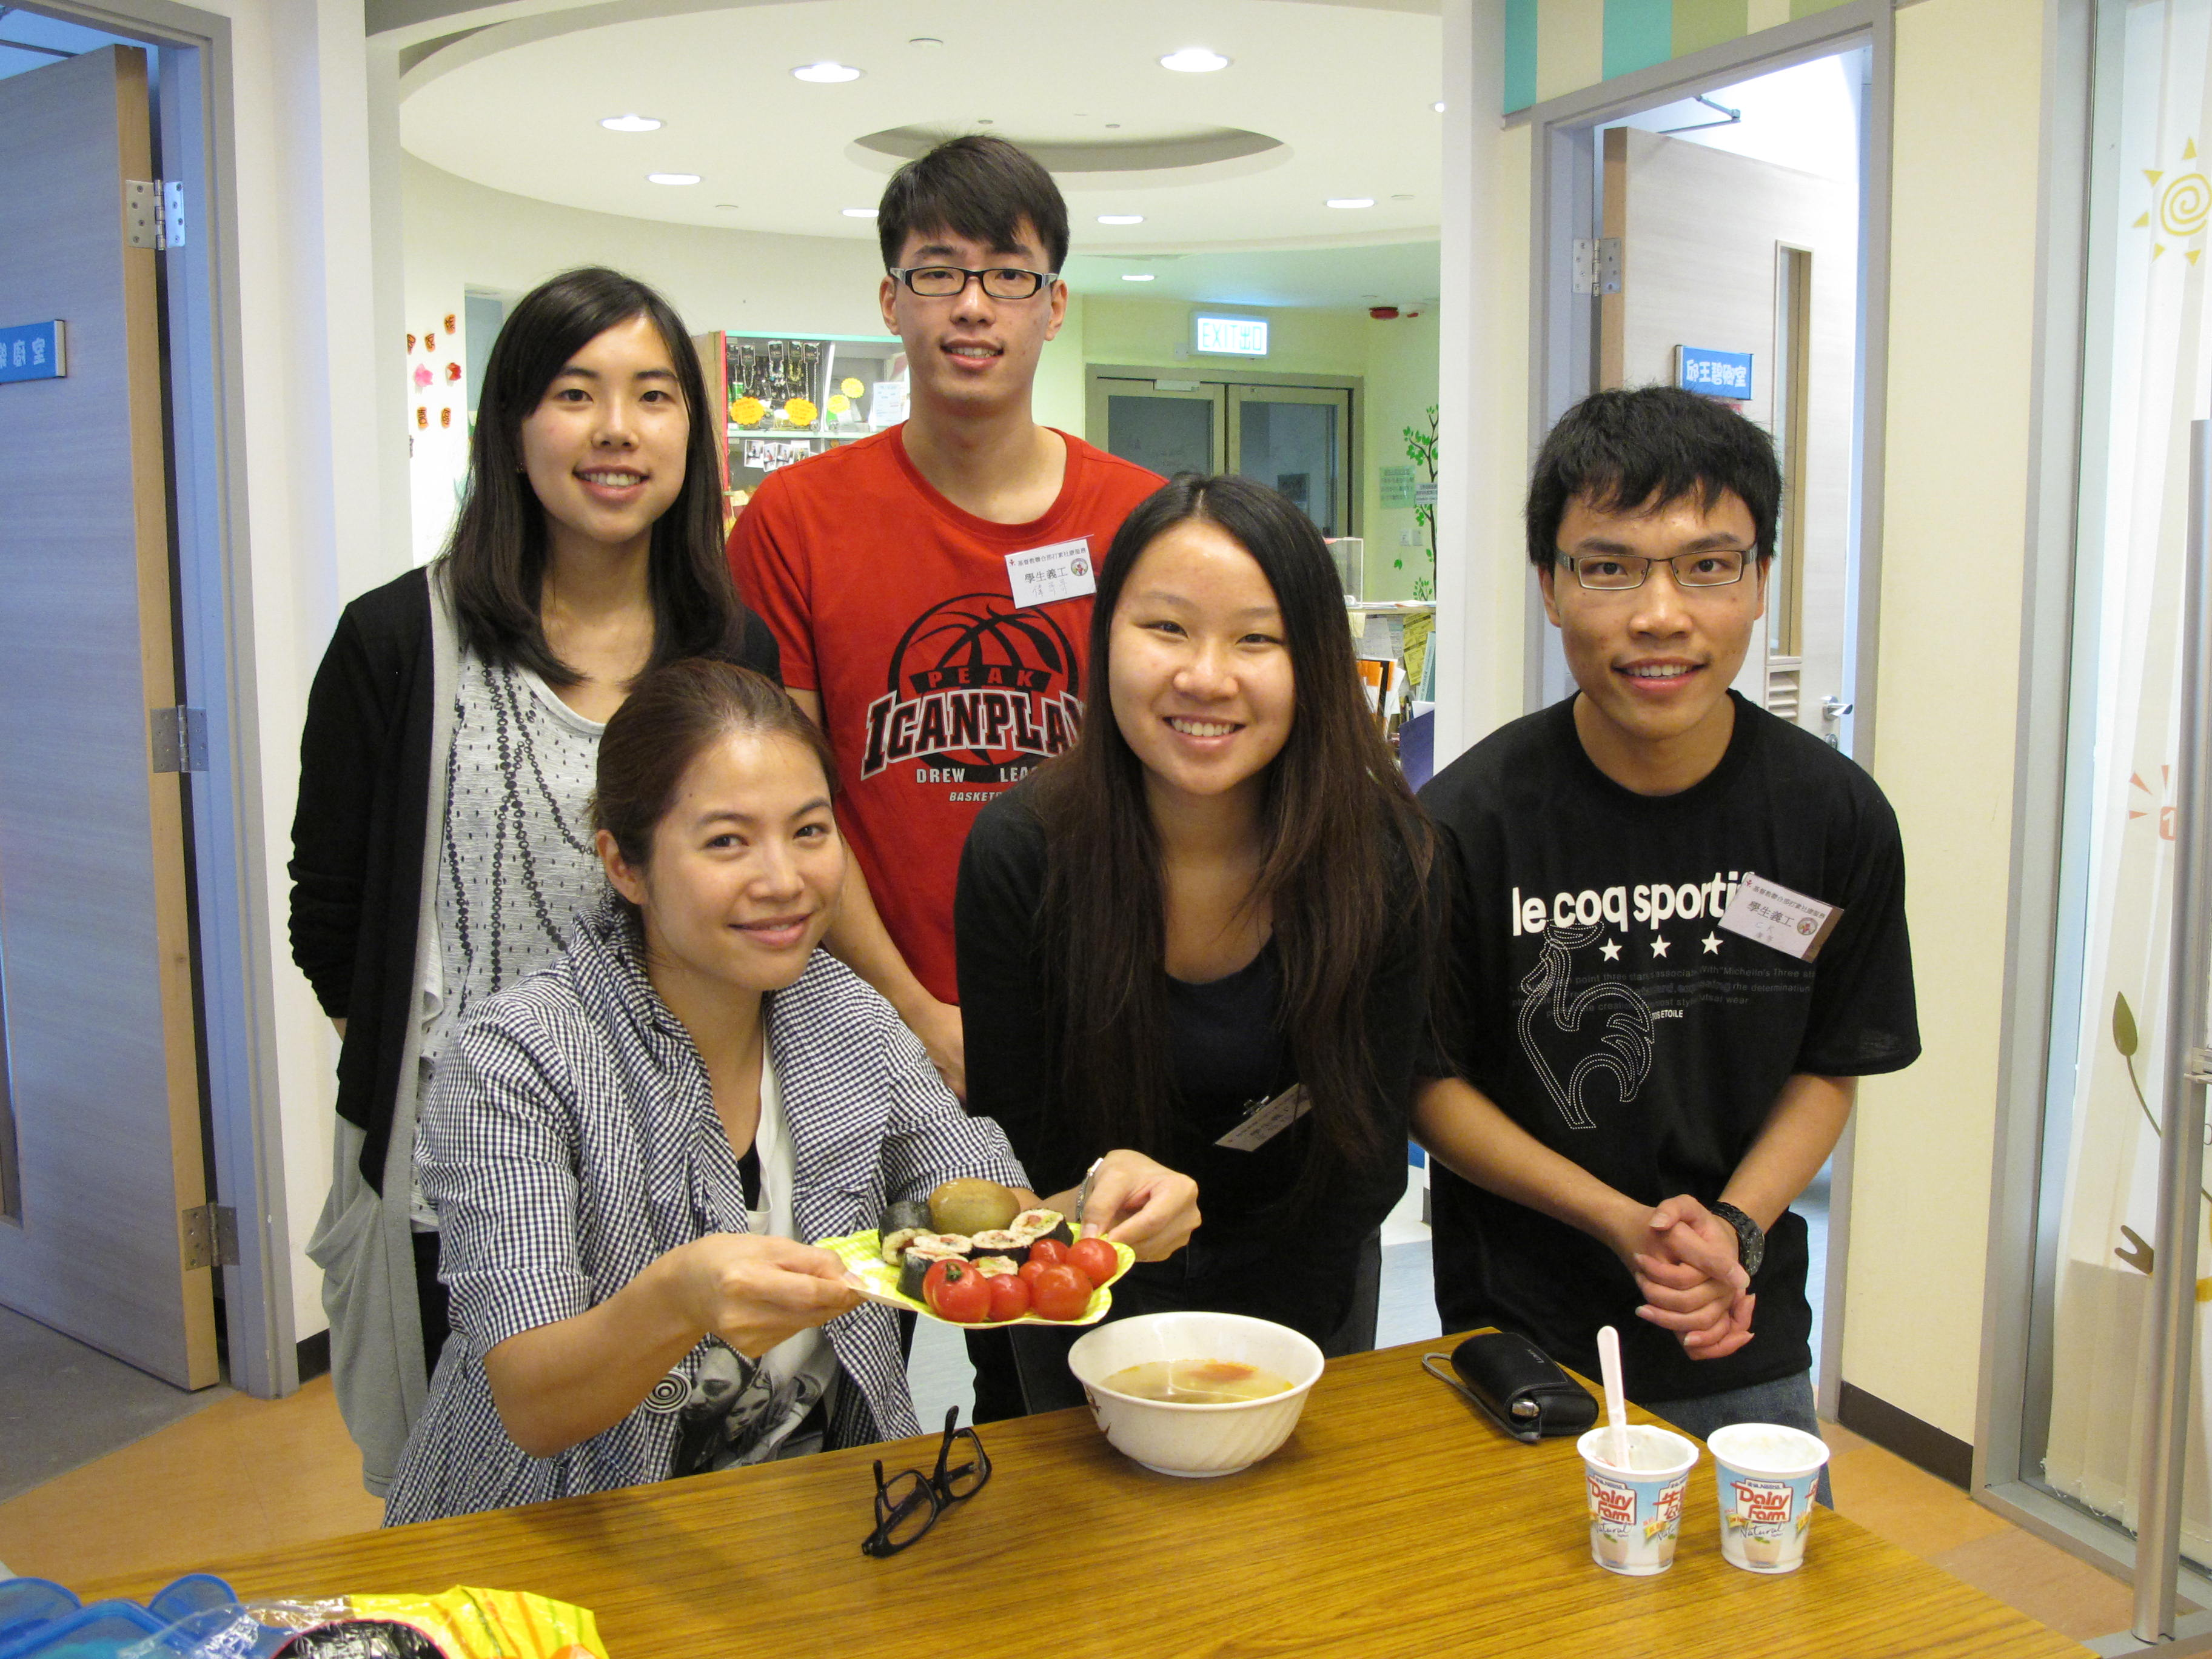 United Christian Nethersole Community Health Service Project -- 餐餐智慳嚐有營 - Photo - 55